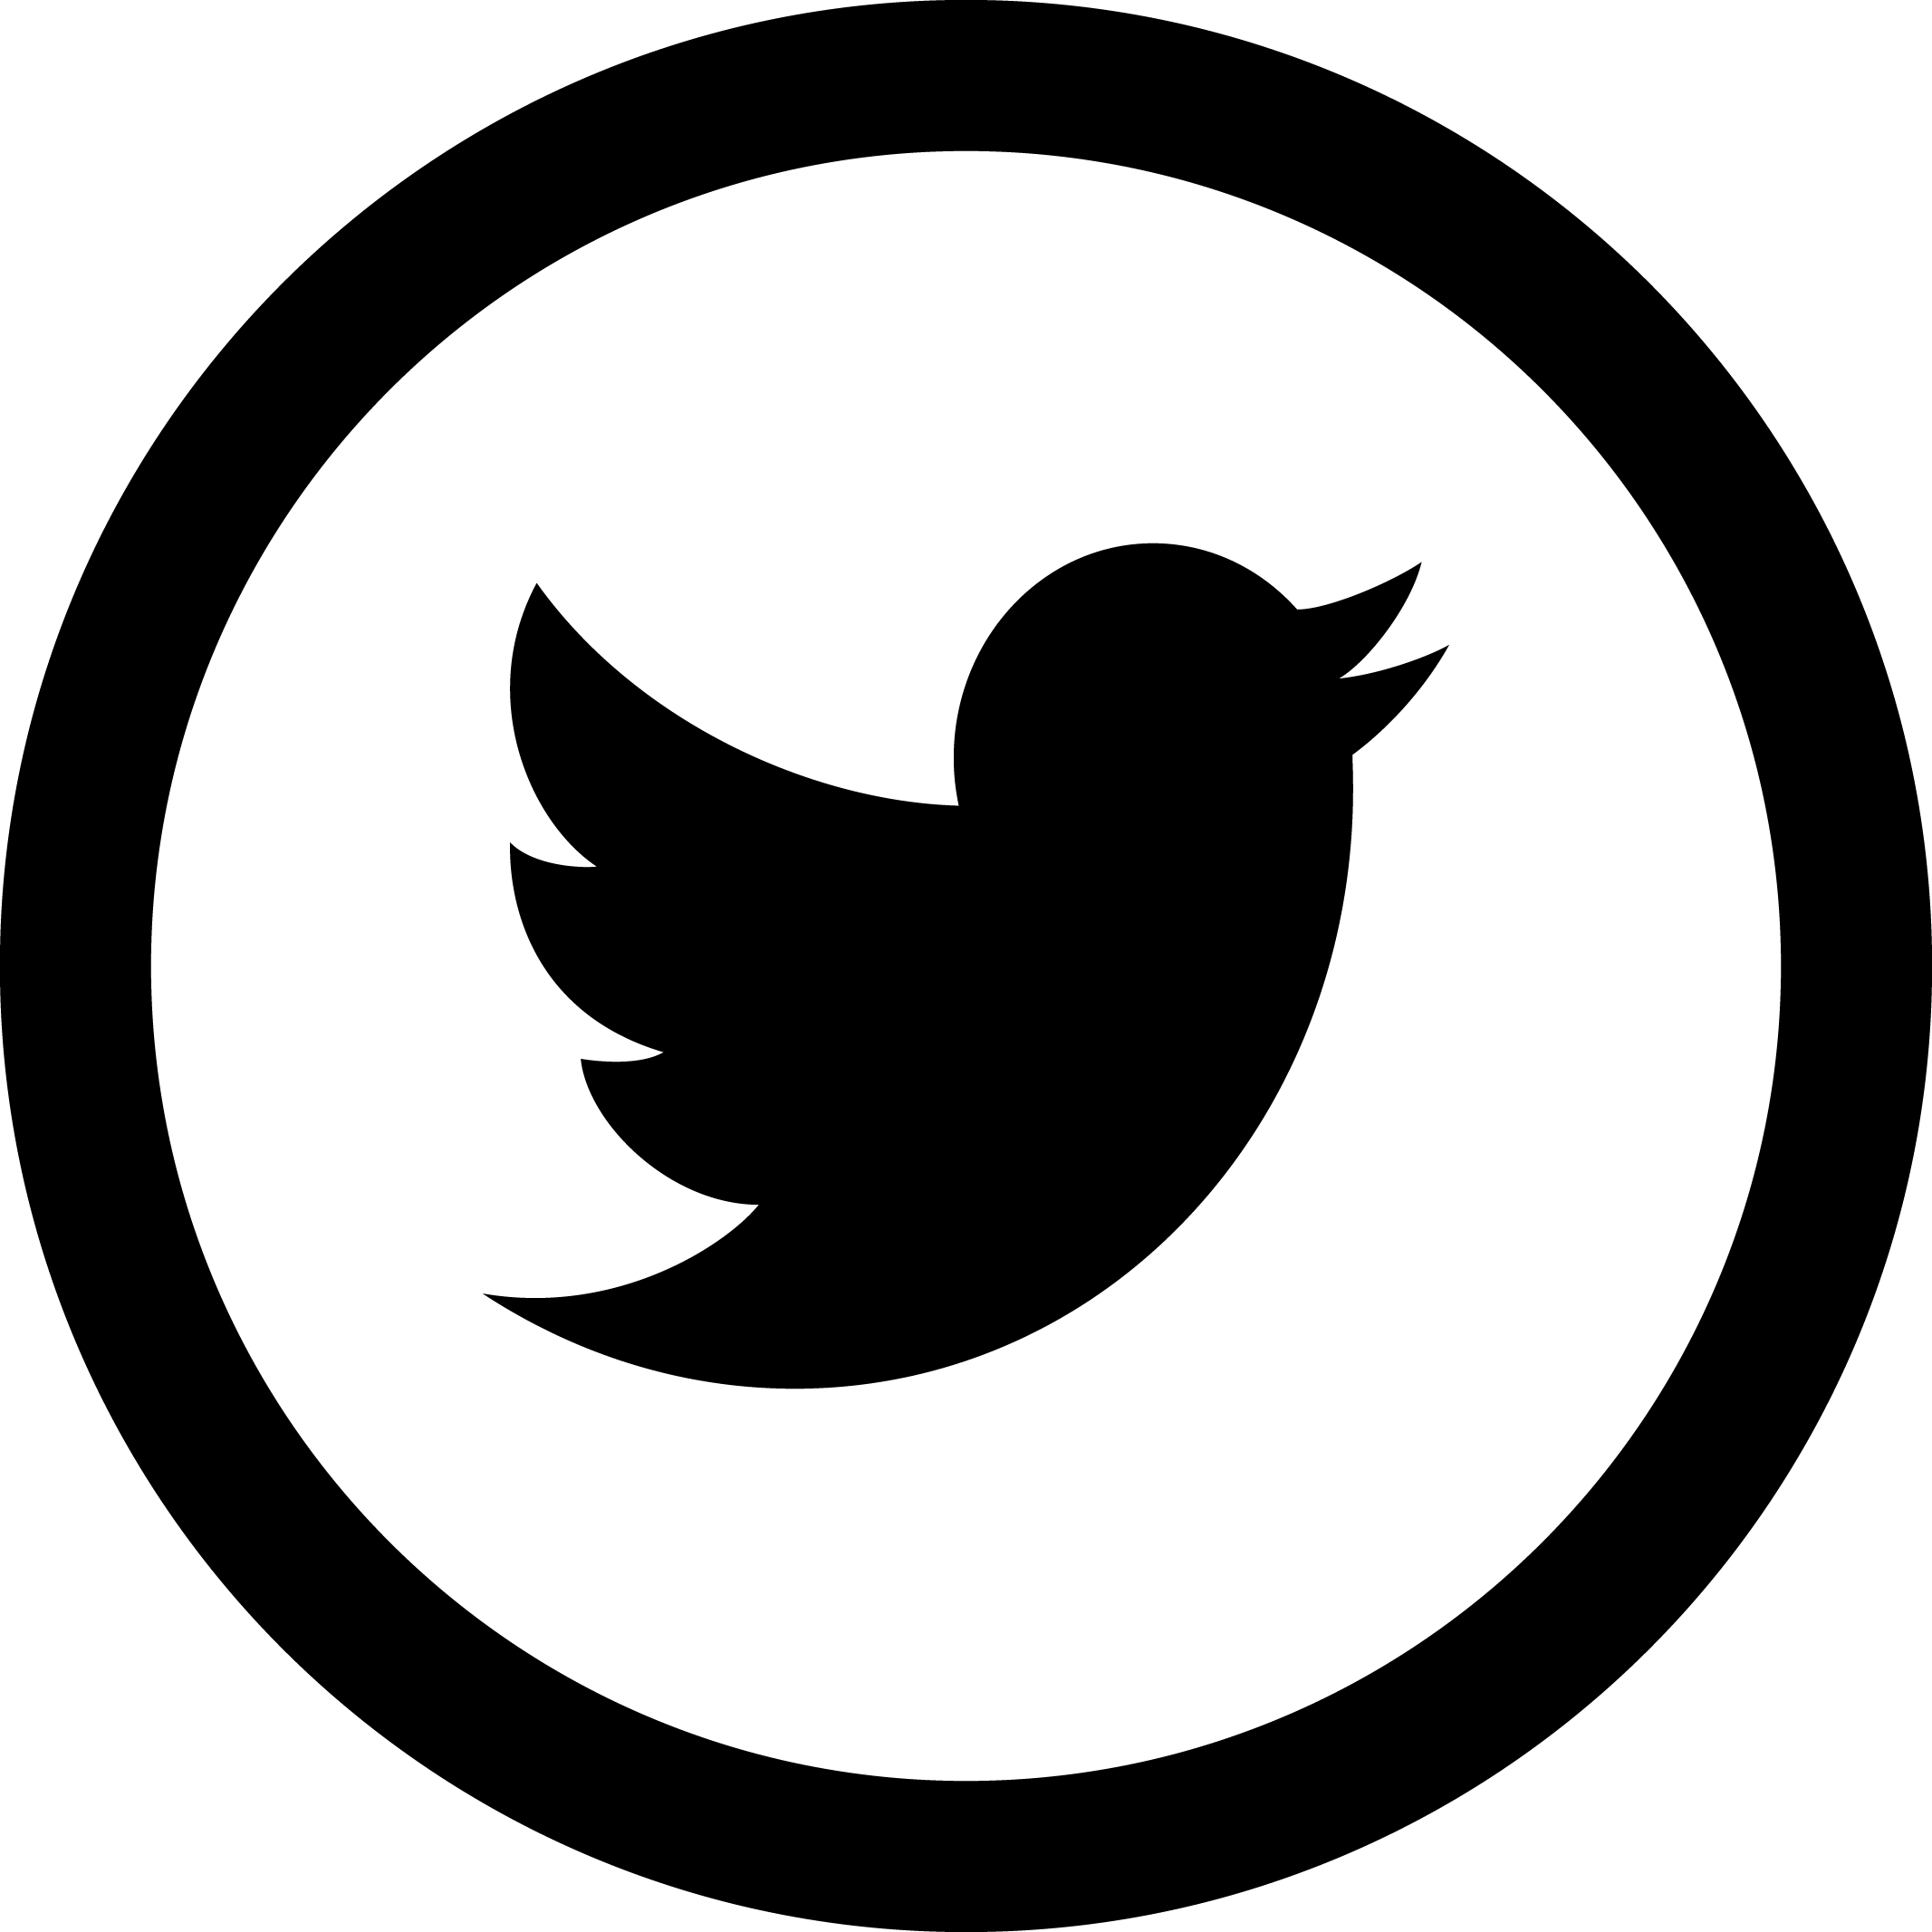 black-twitter-icon-transparent-background-19.jpg